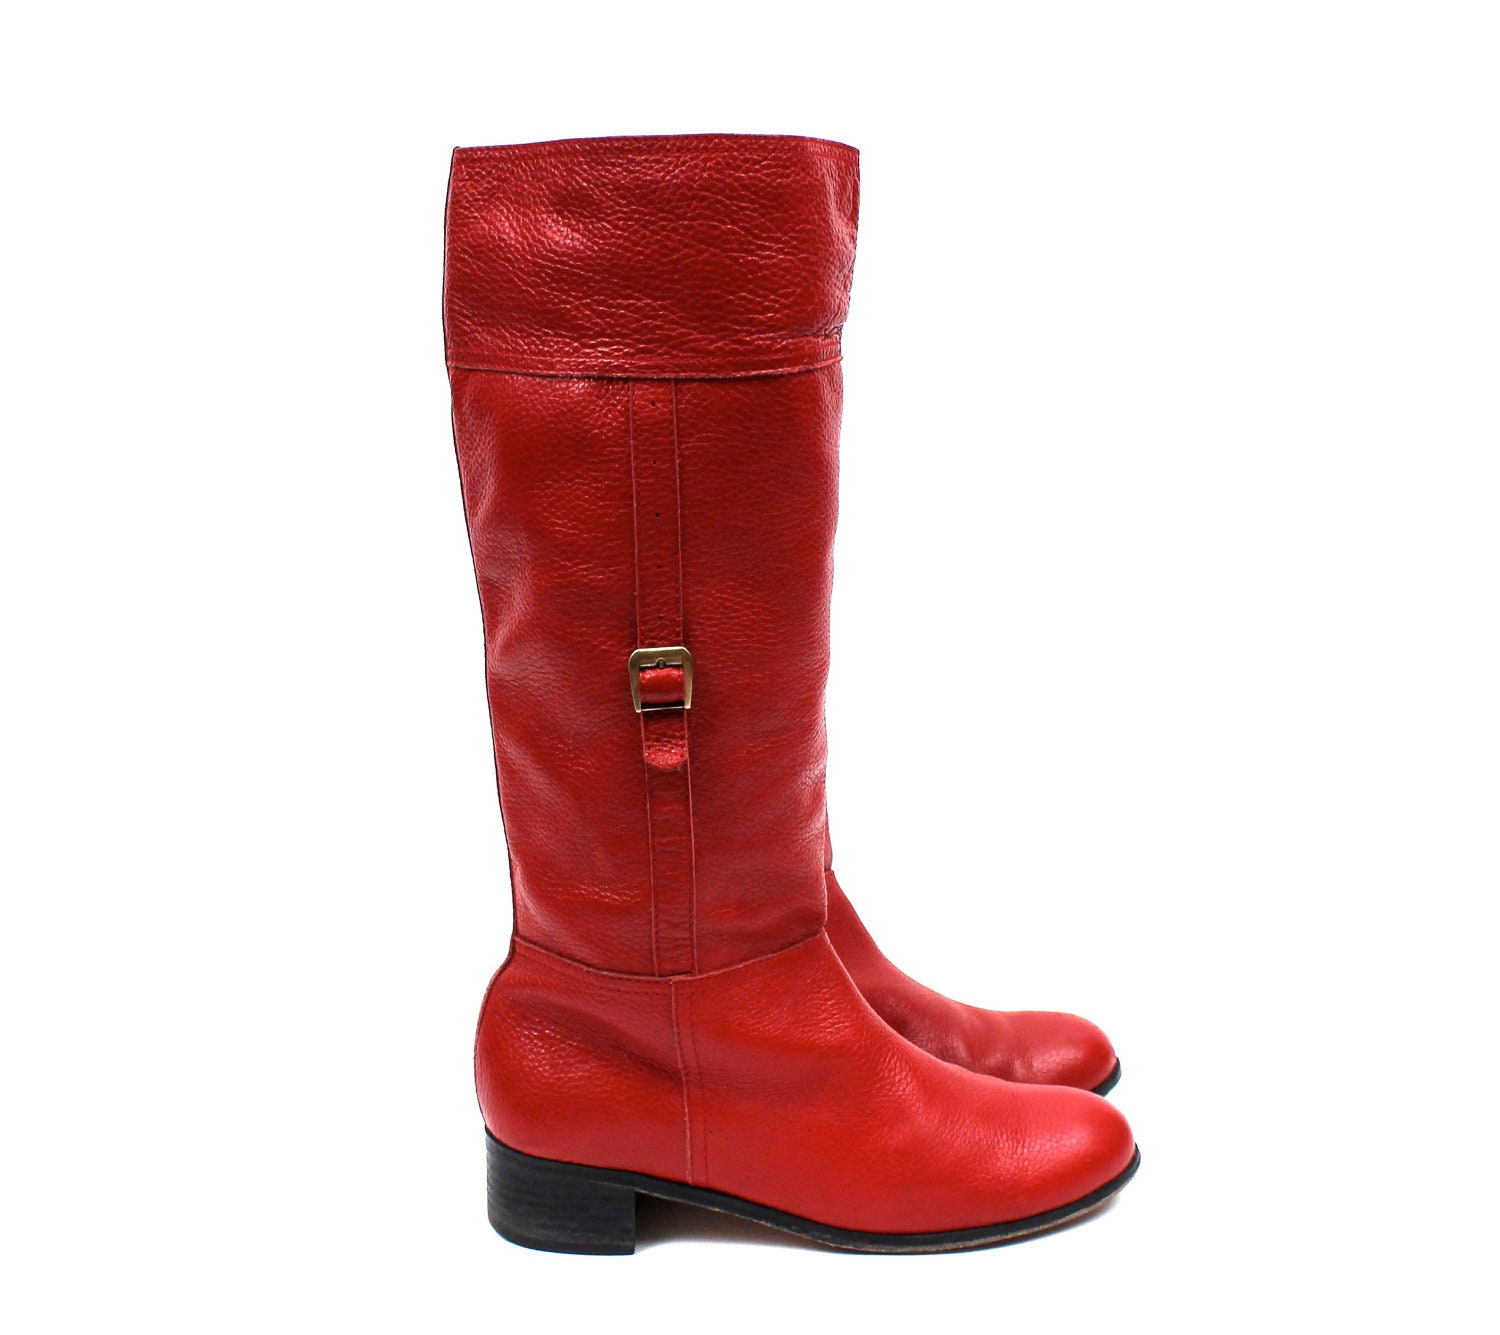 leather knee high boots womens size 11 apple